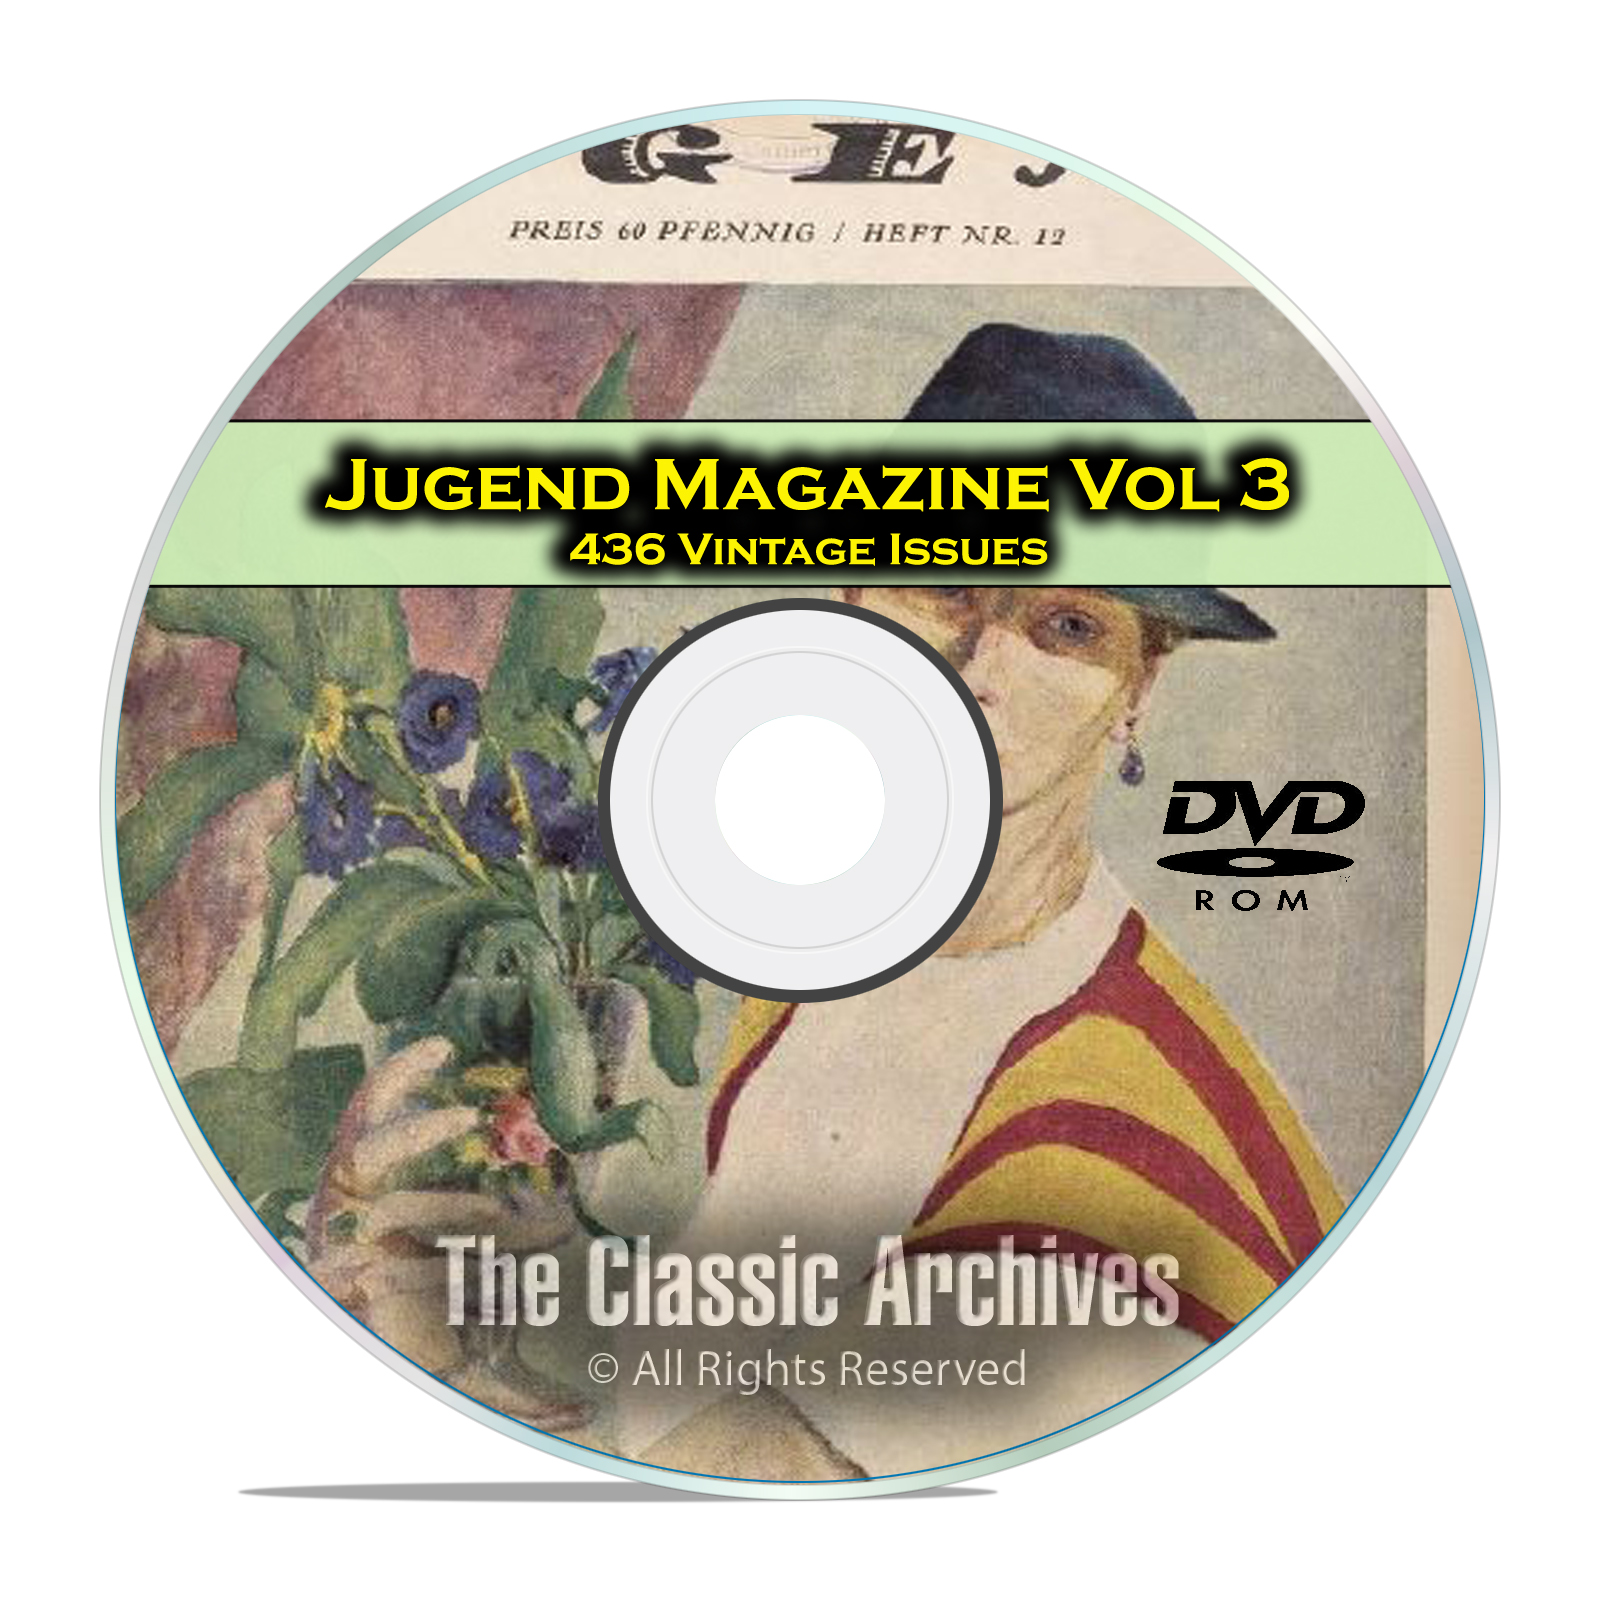 Jugend Vintage German Art Nouveau Magazine Jugendstil, 436 Issues Vol 3 DVD